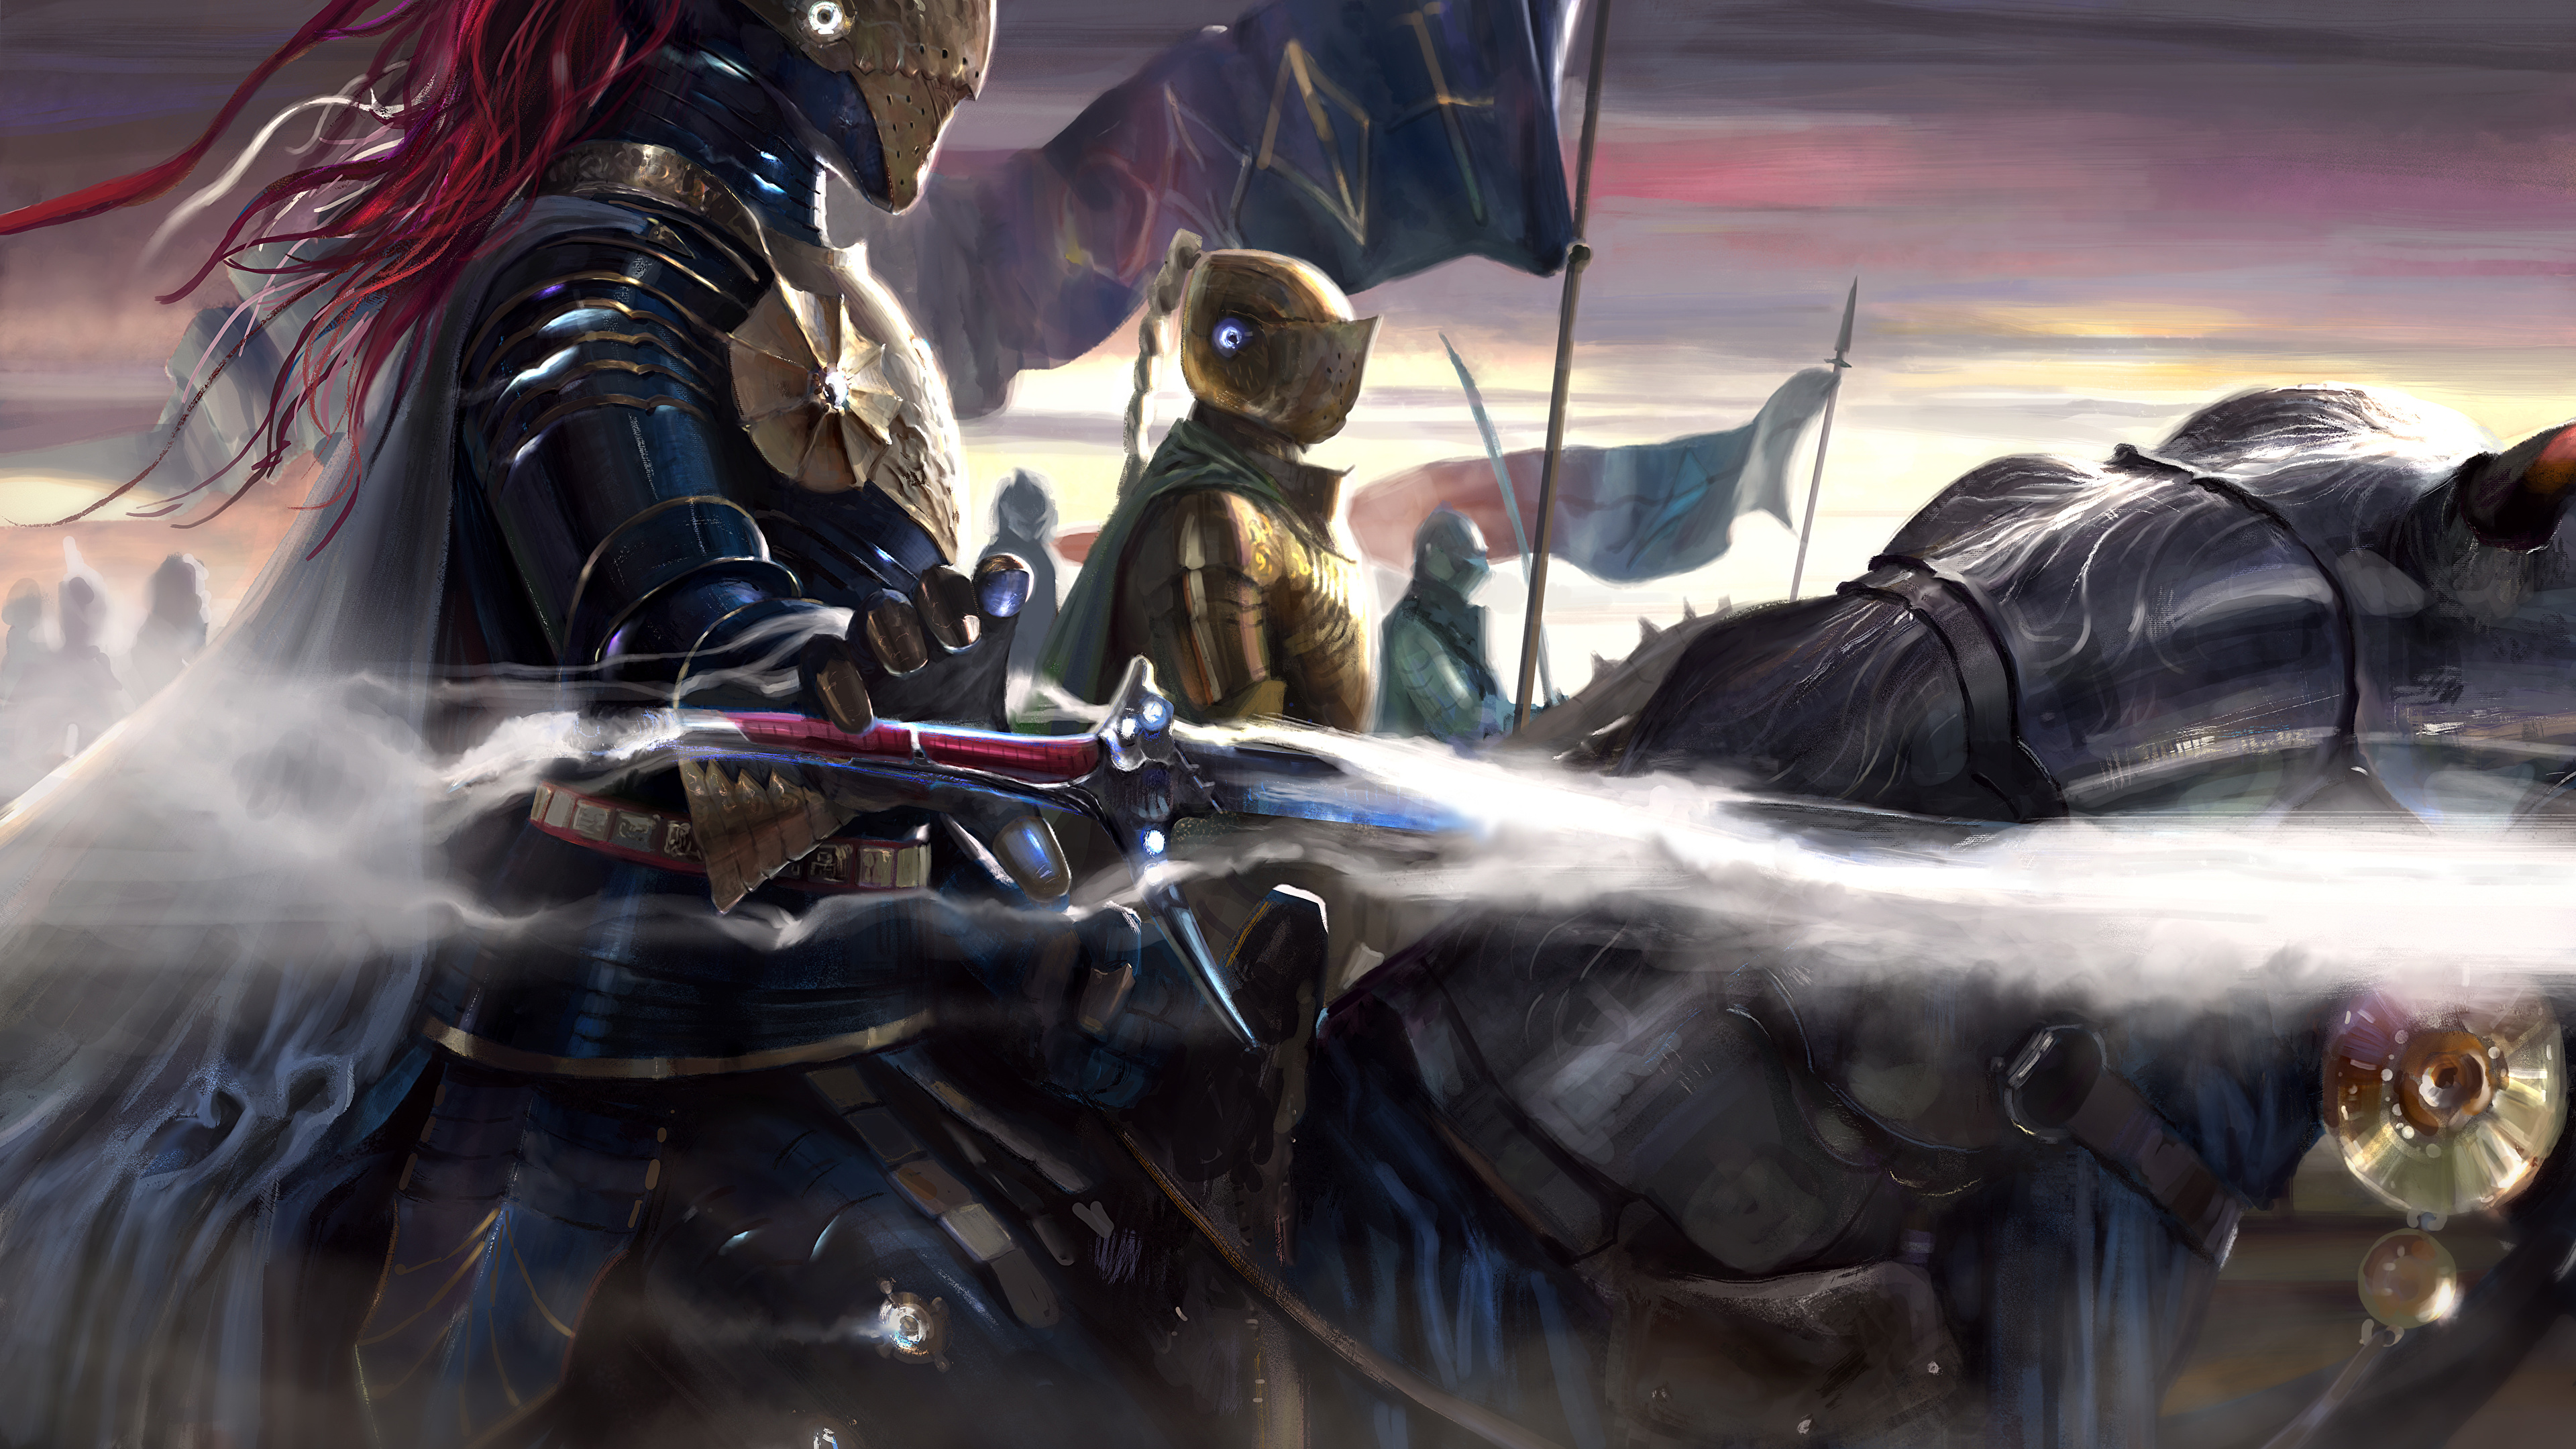 Photo Armor Knight Illustrations To Books Brandon 3840x2160